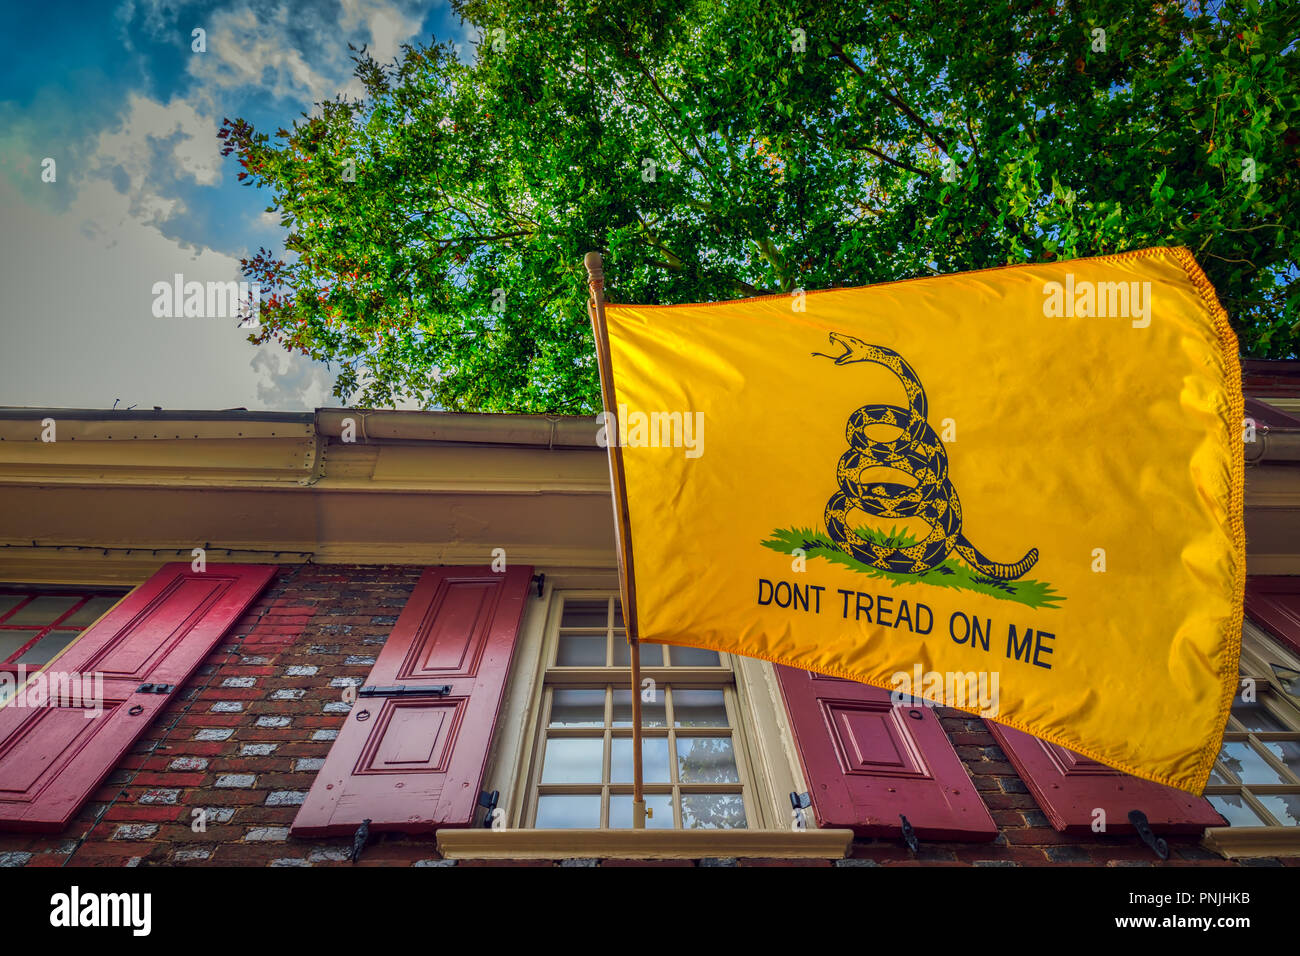 """The Gadsden flag, with """"Don't Tread On Me"""" written on it, was designed by General Christopher Gadsden during the American Revolution. - Stock Image"""